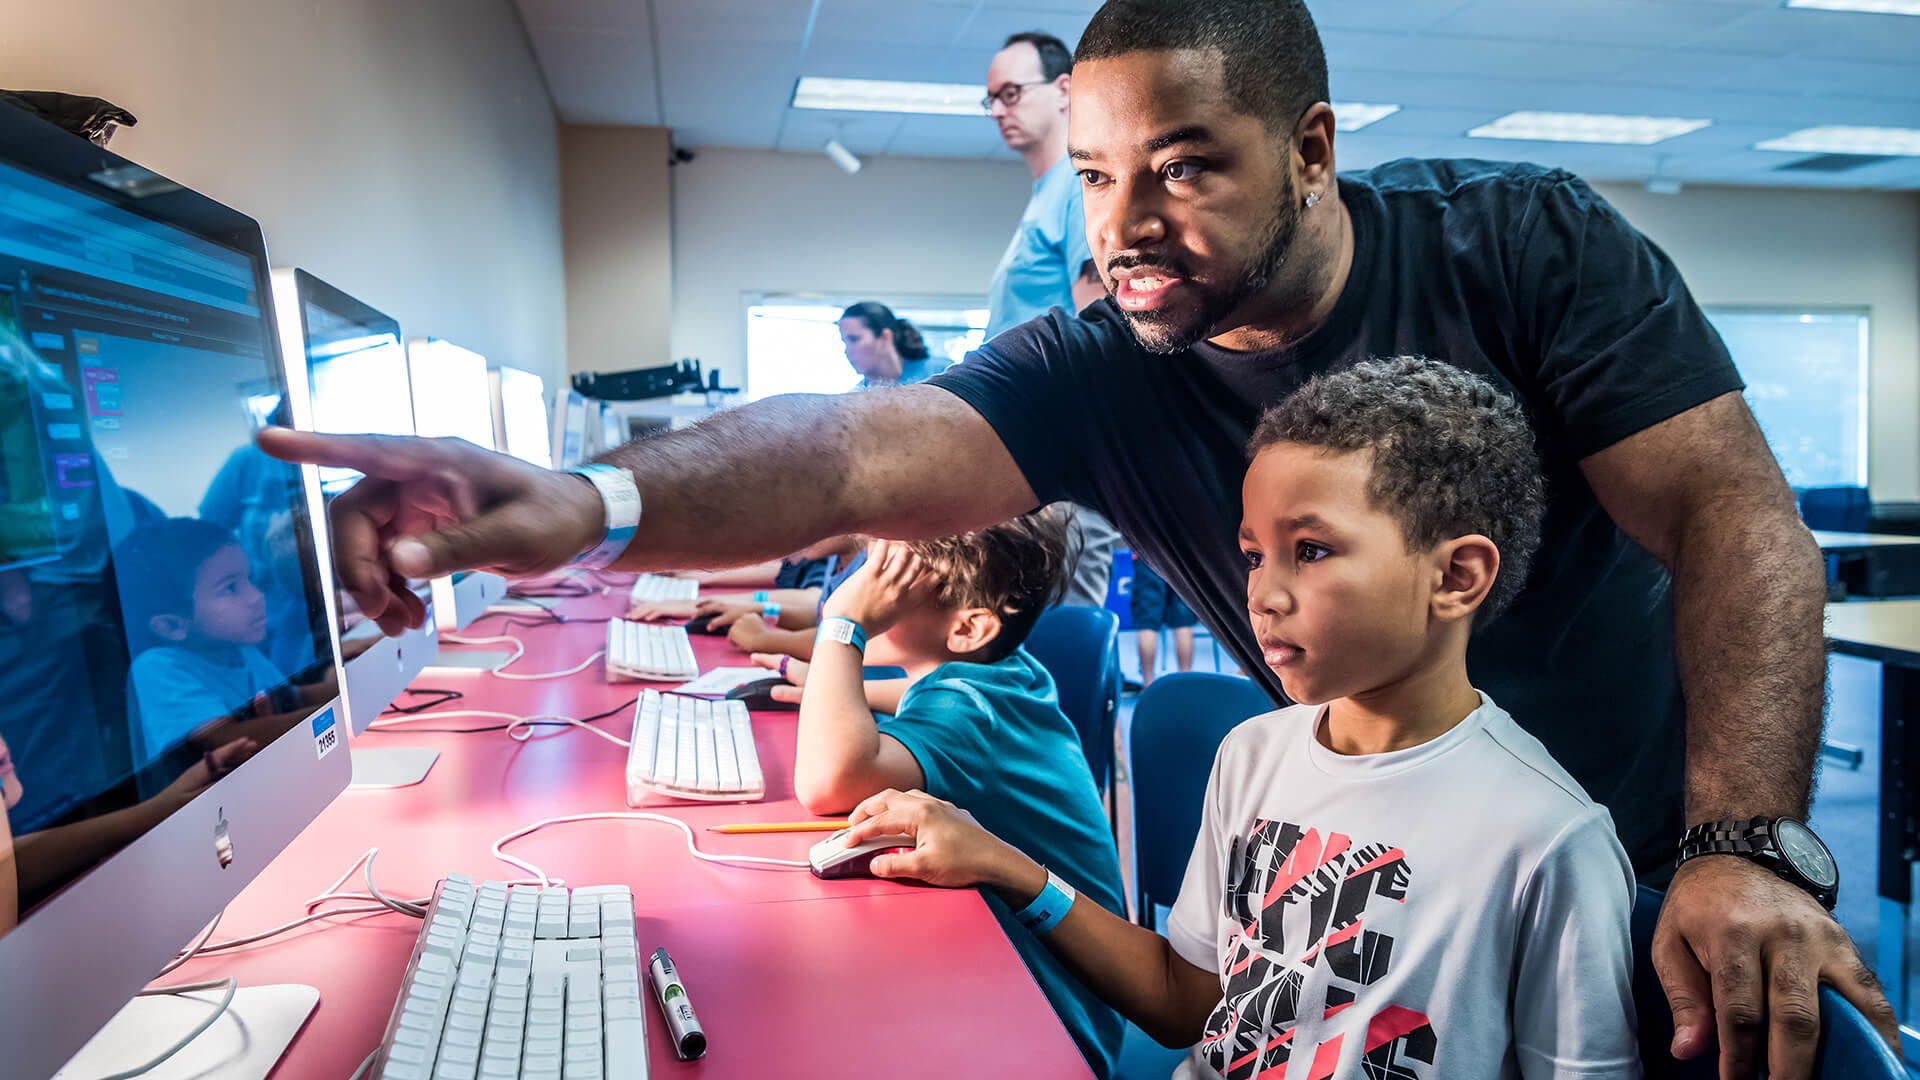 Image of educator and student pointing at a computer screen.